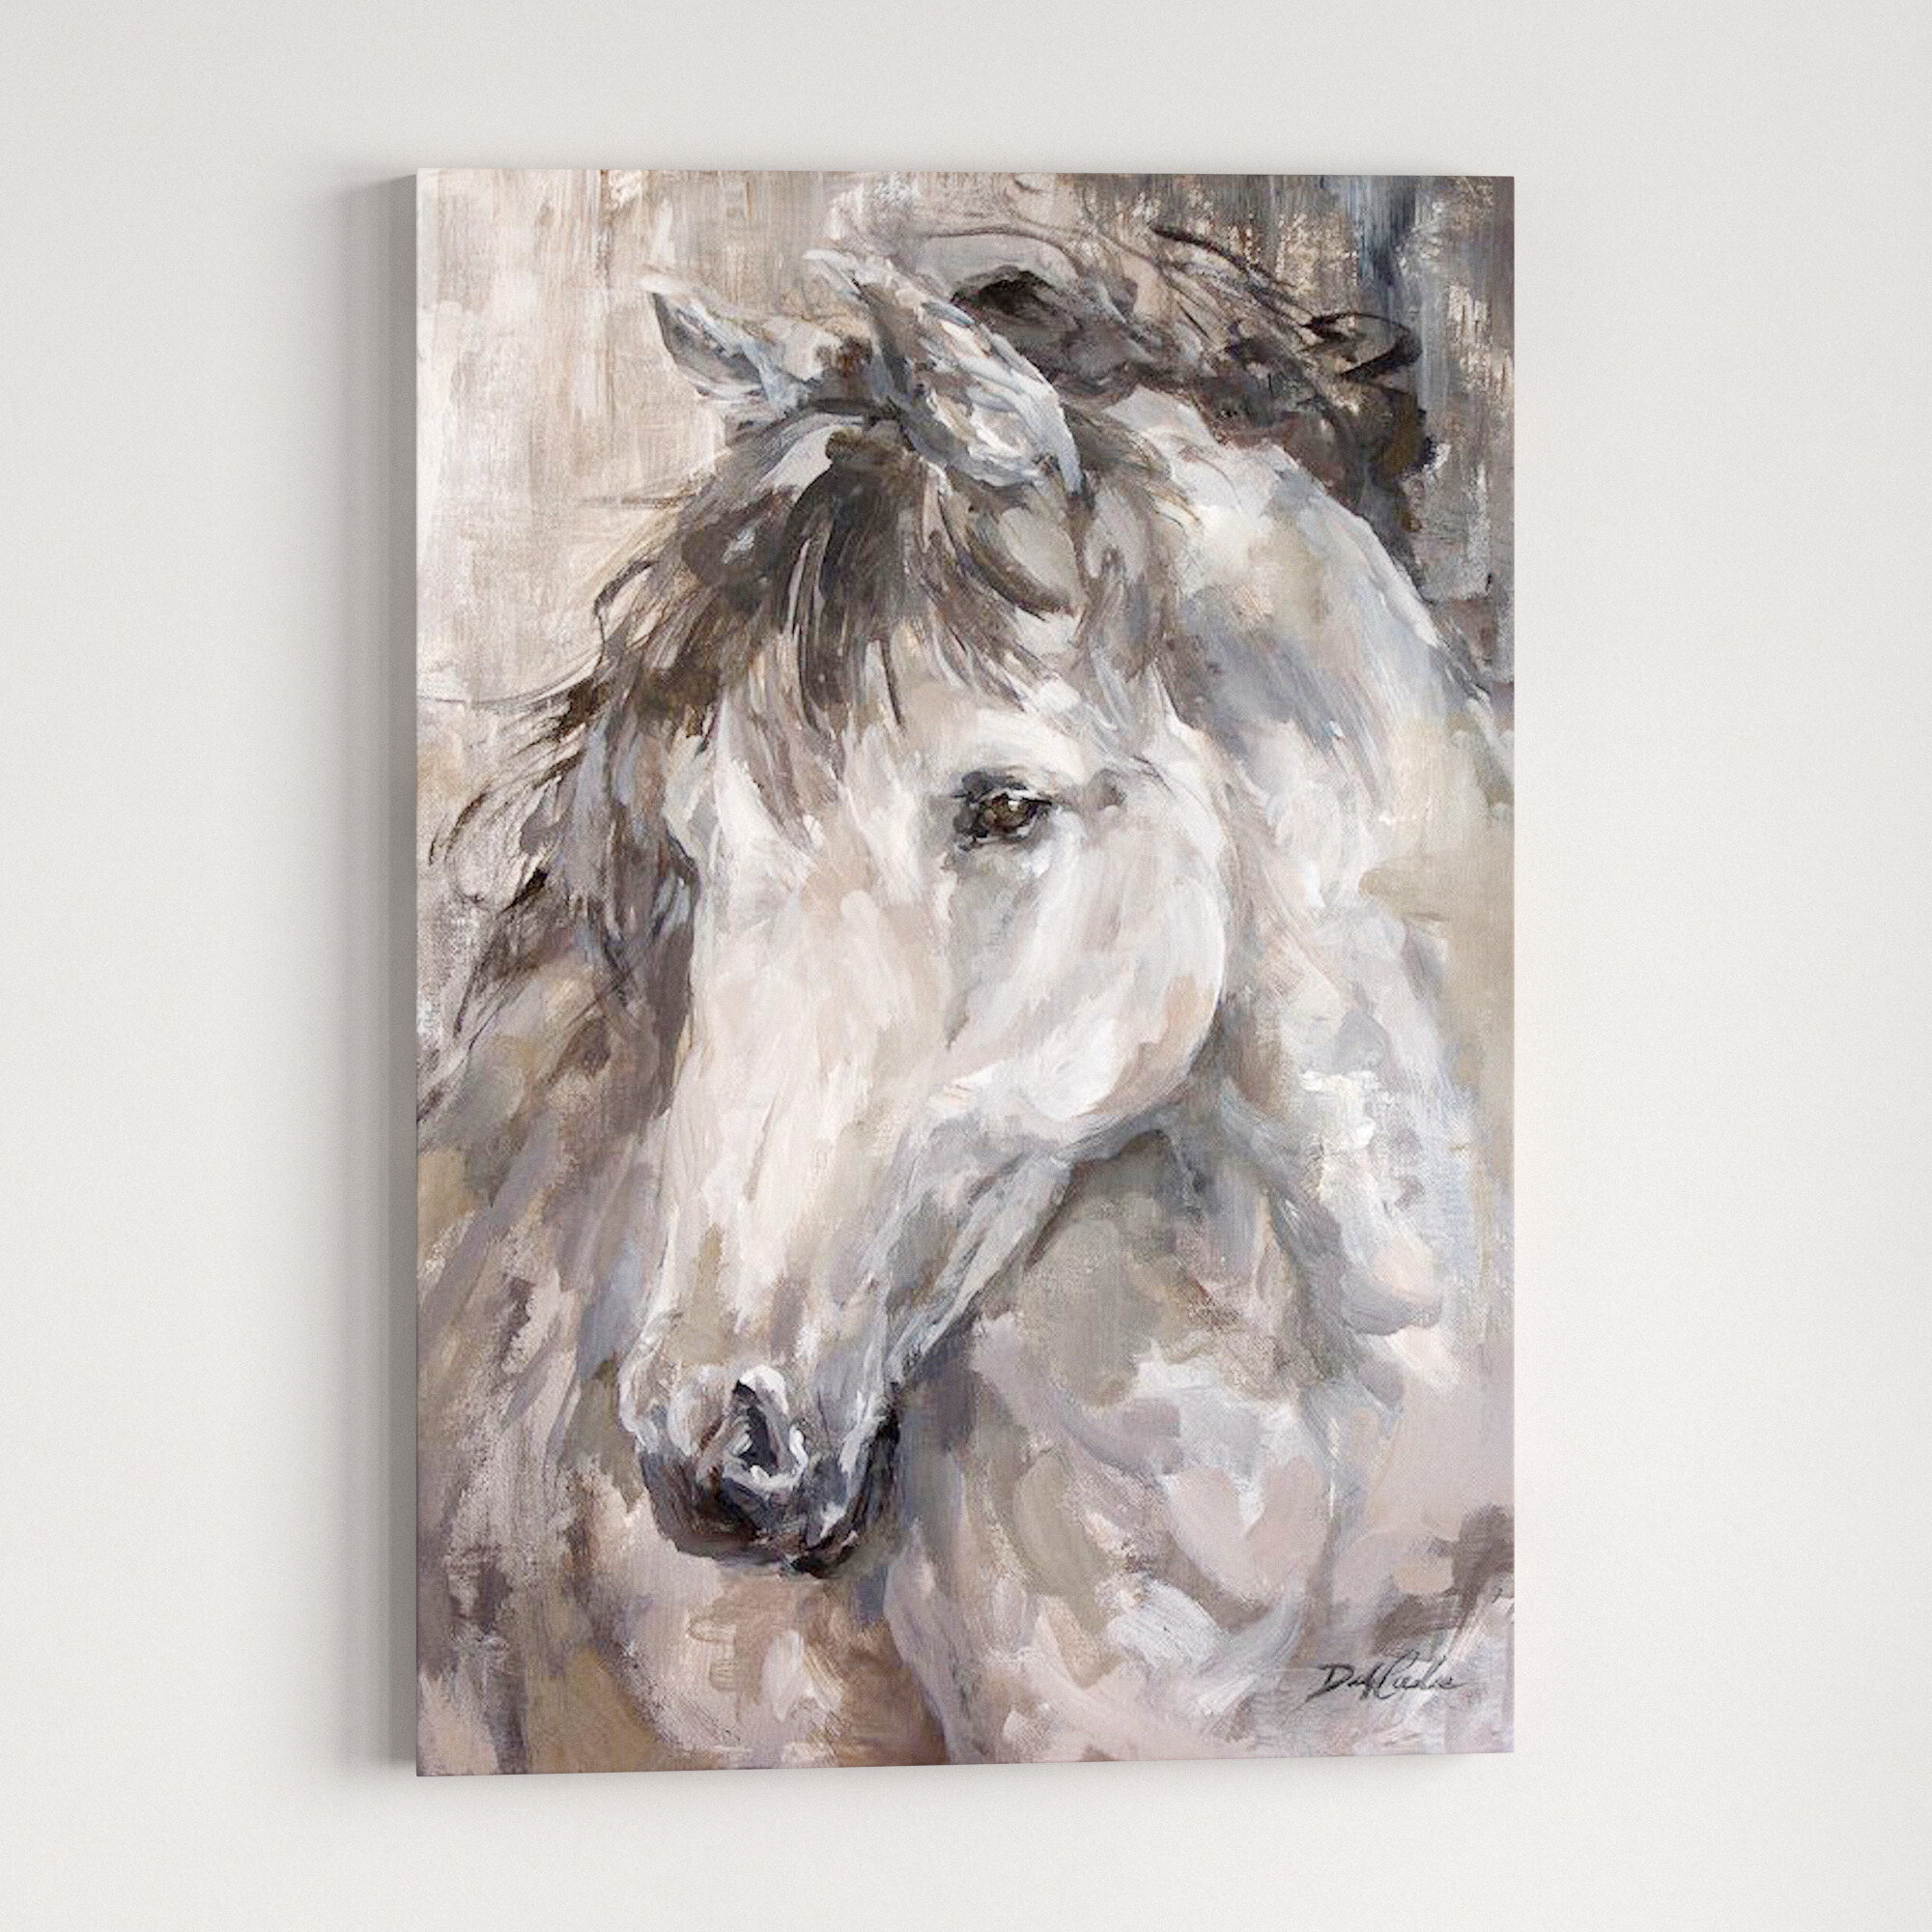 Gallery Wrapped Canvas Horse Wall Art You Ll Love In 2020